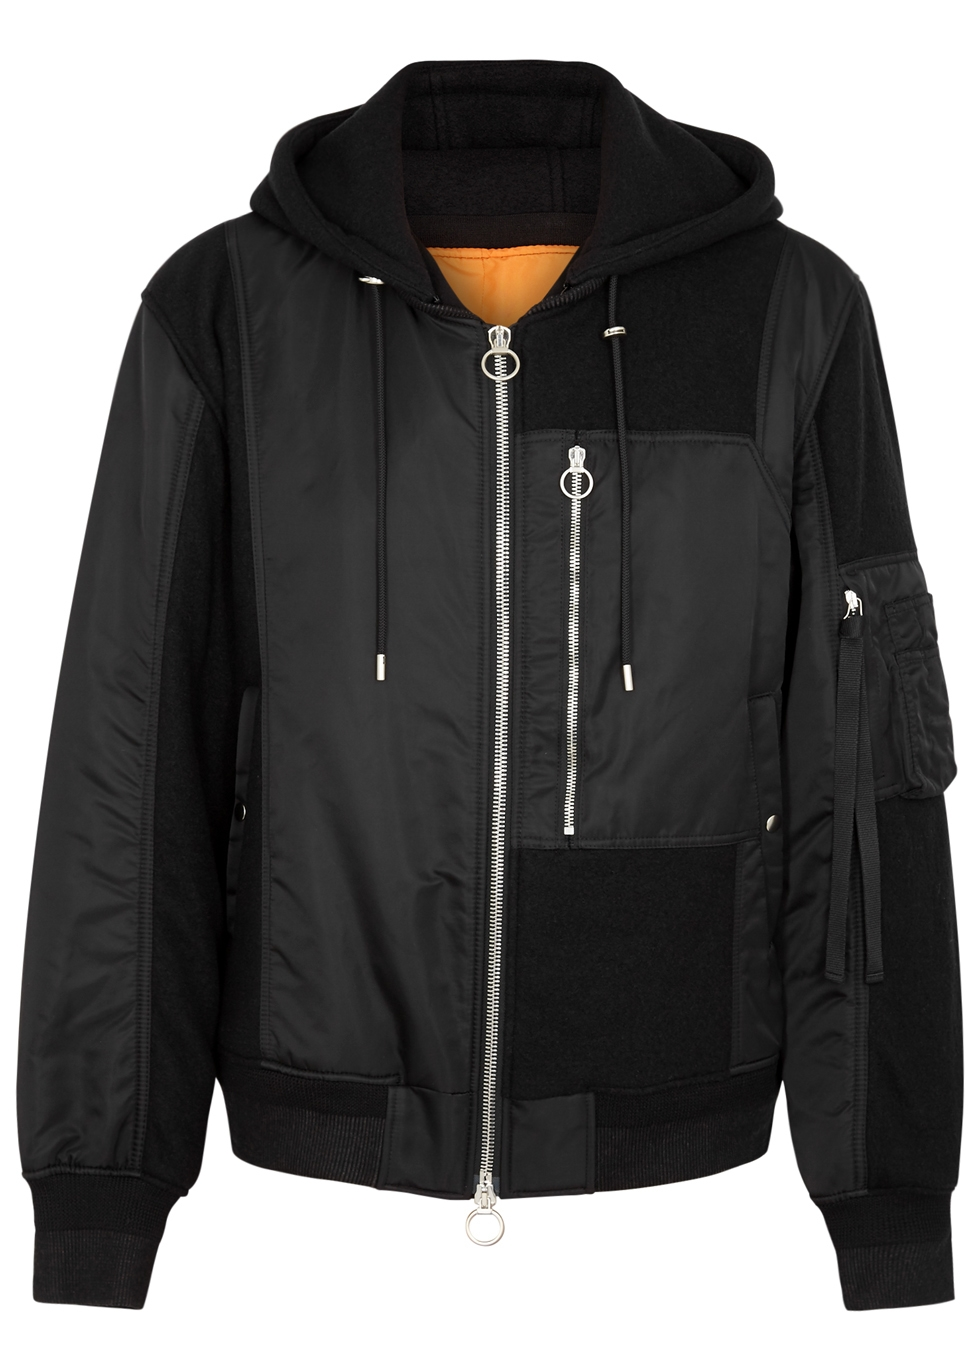 SOLID HOMME BLACK SHELL AND WOOL BOMBER JACKET